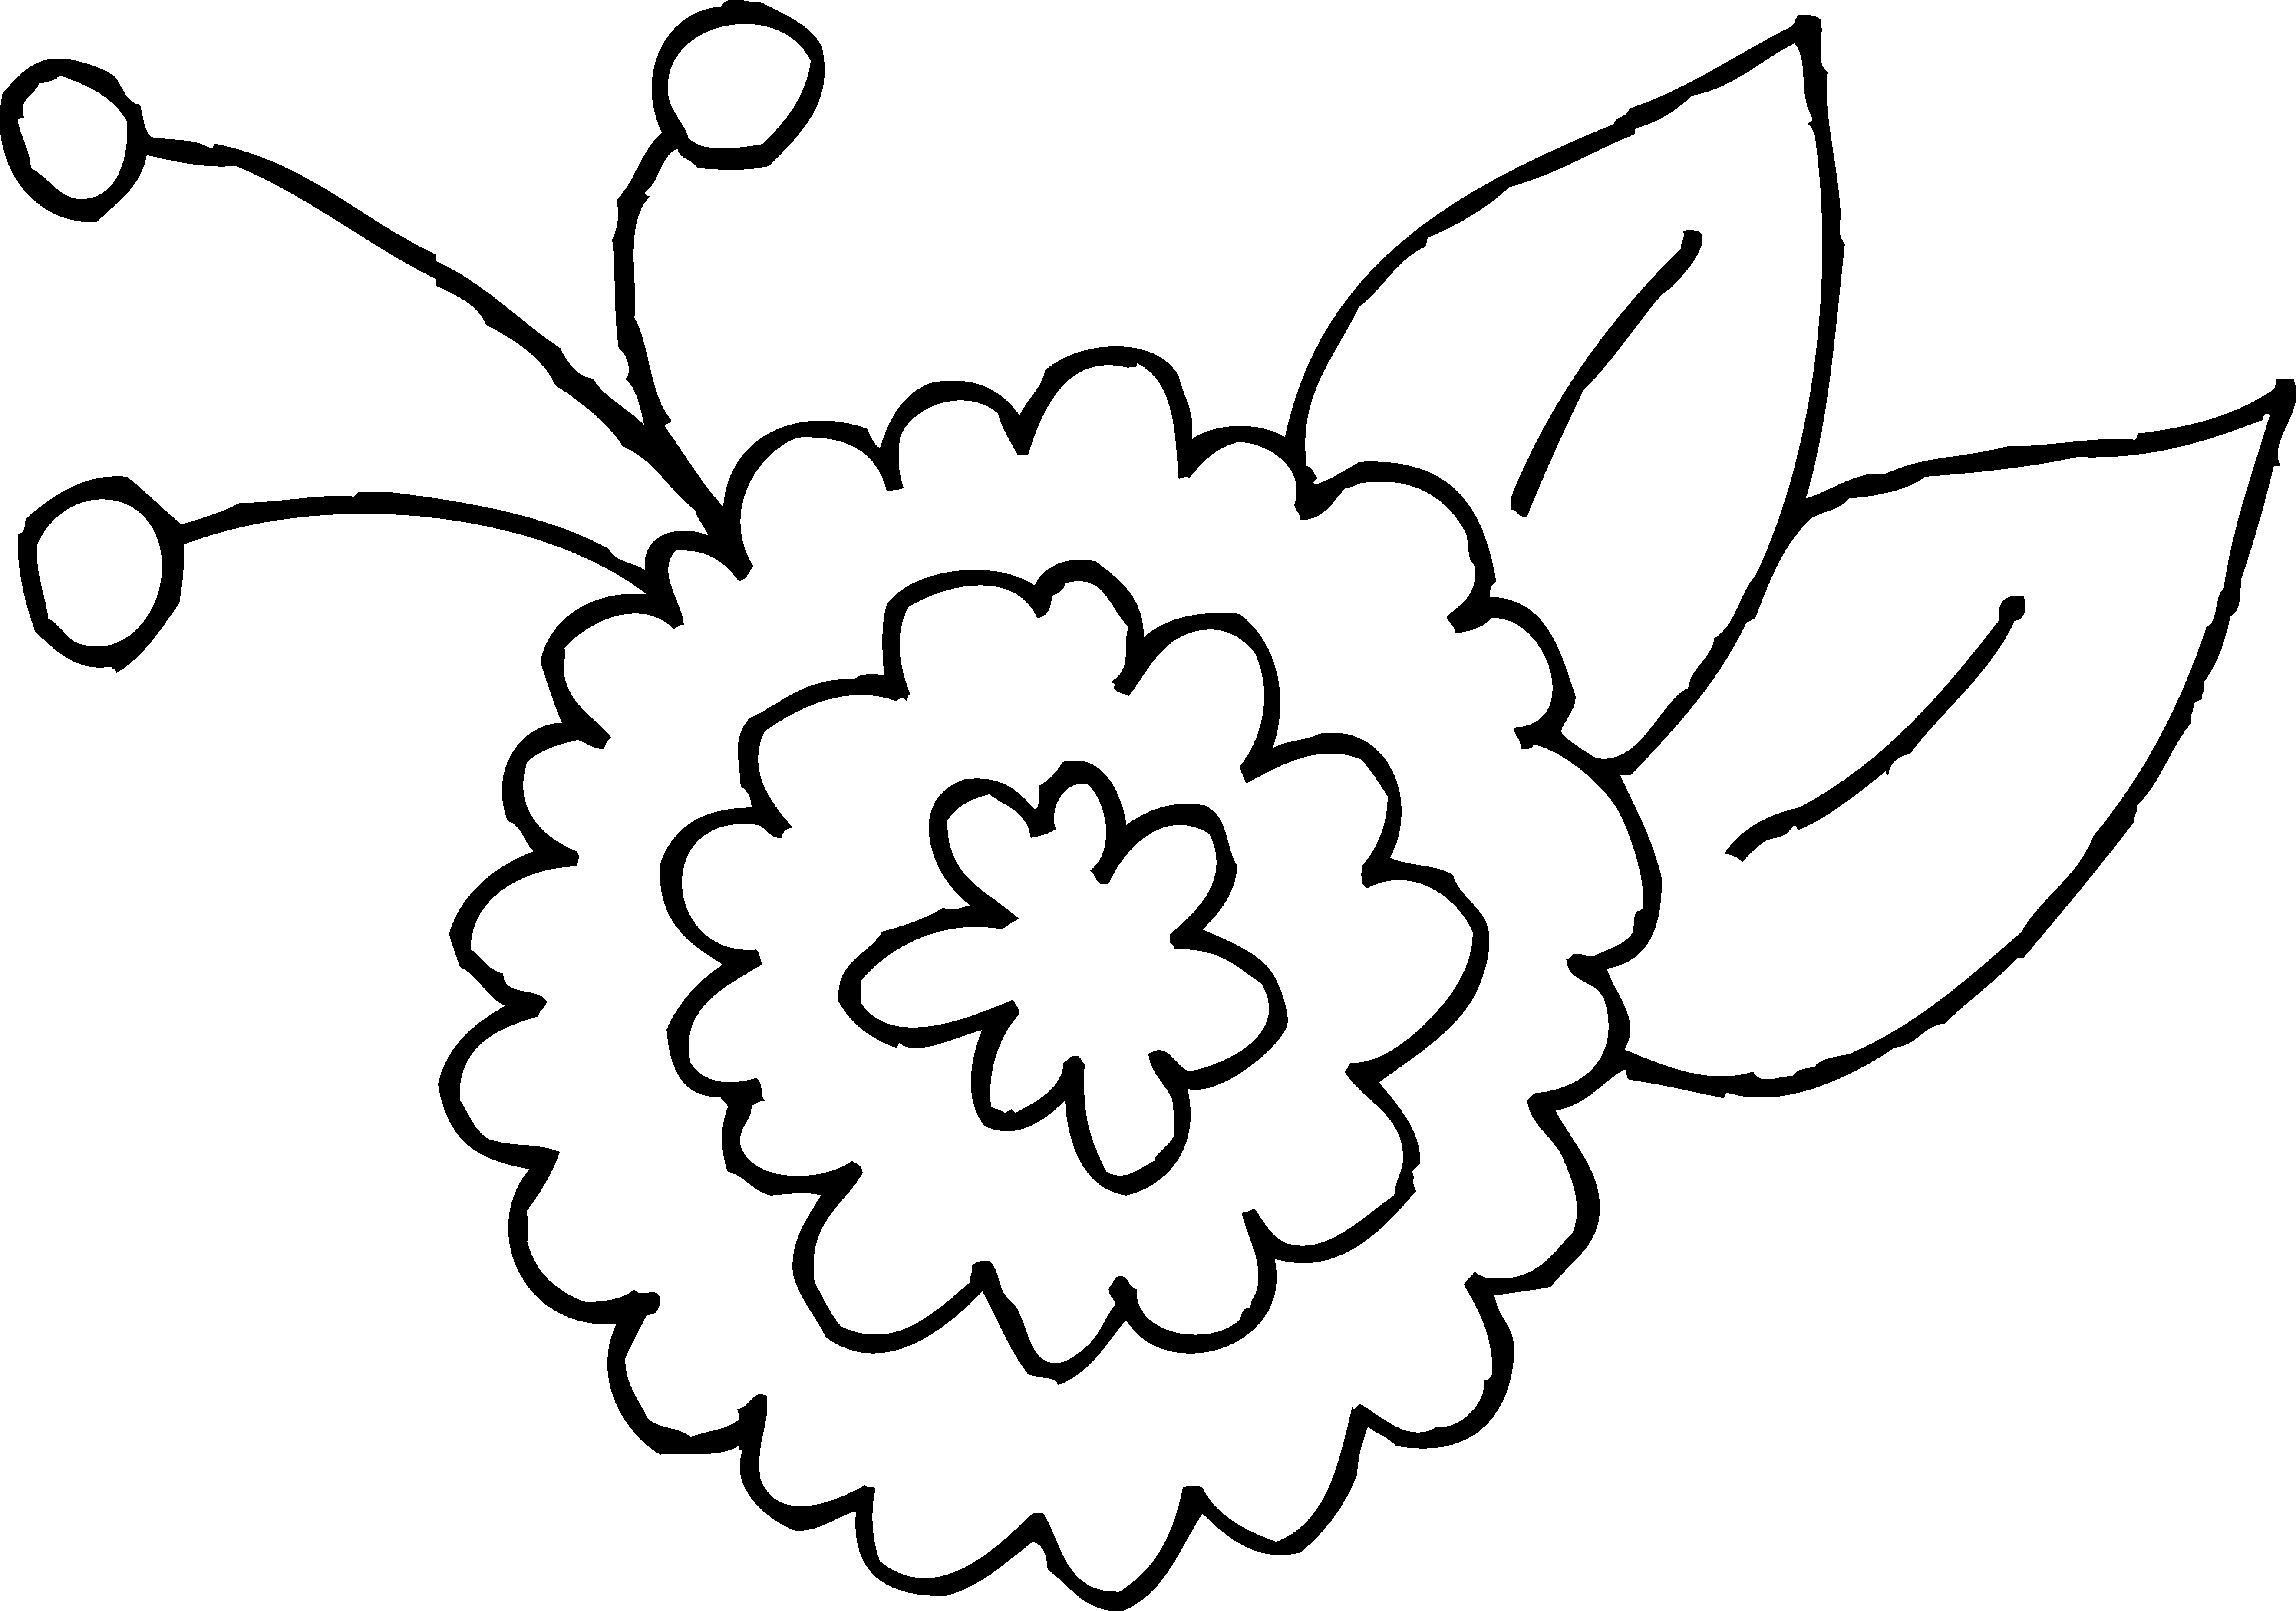 Flower clipart coloring clip black and white library Cute Spring Flower Coloring Page 2 - Free Clip Art clip black and white library